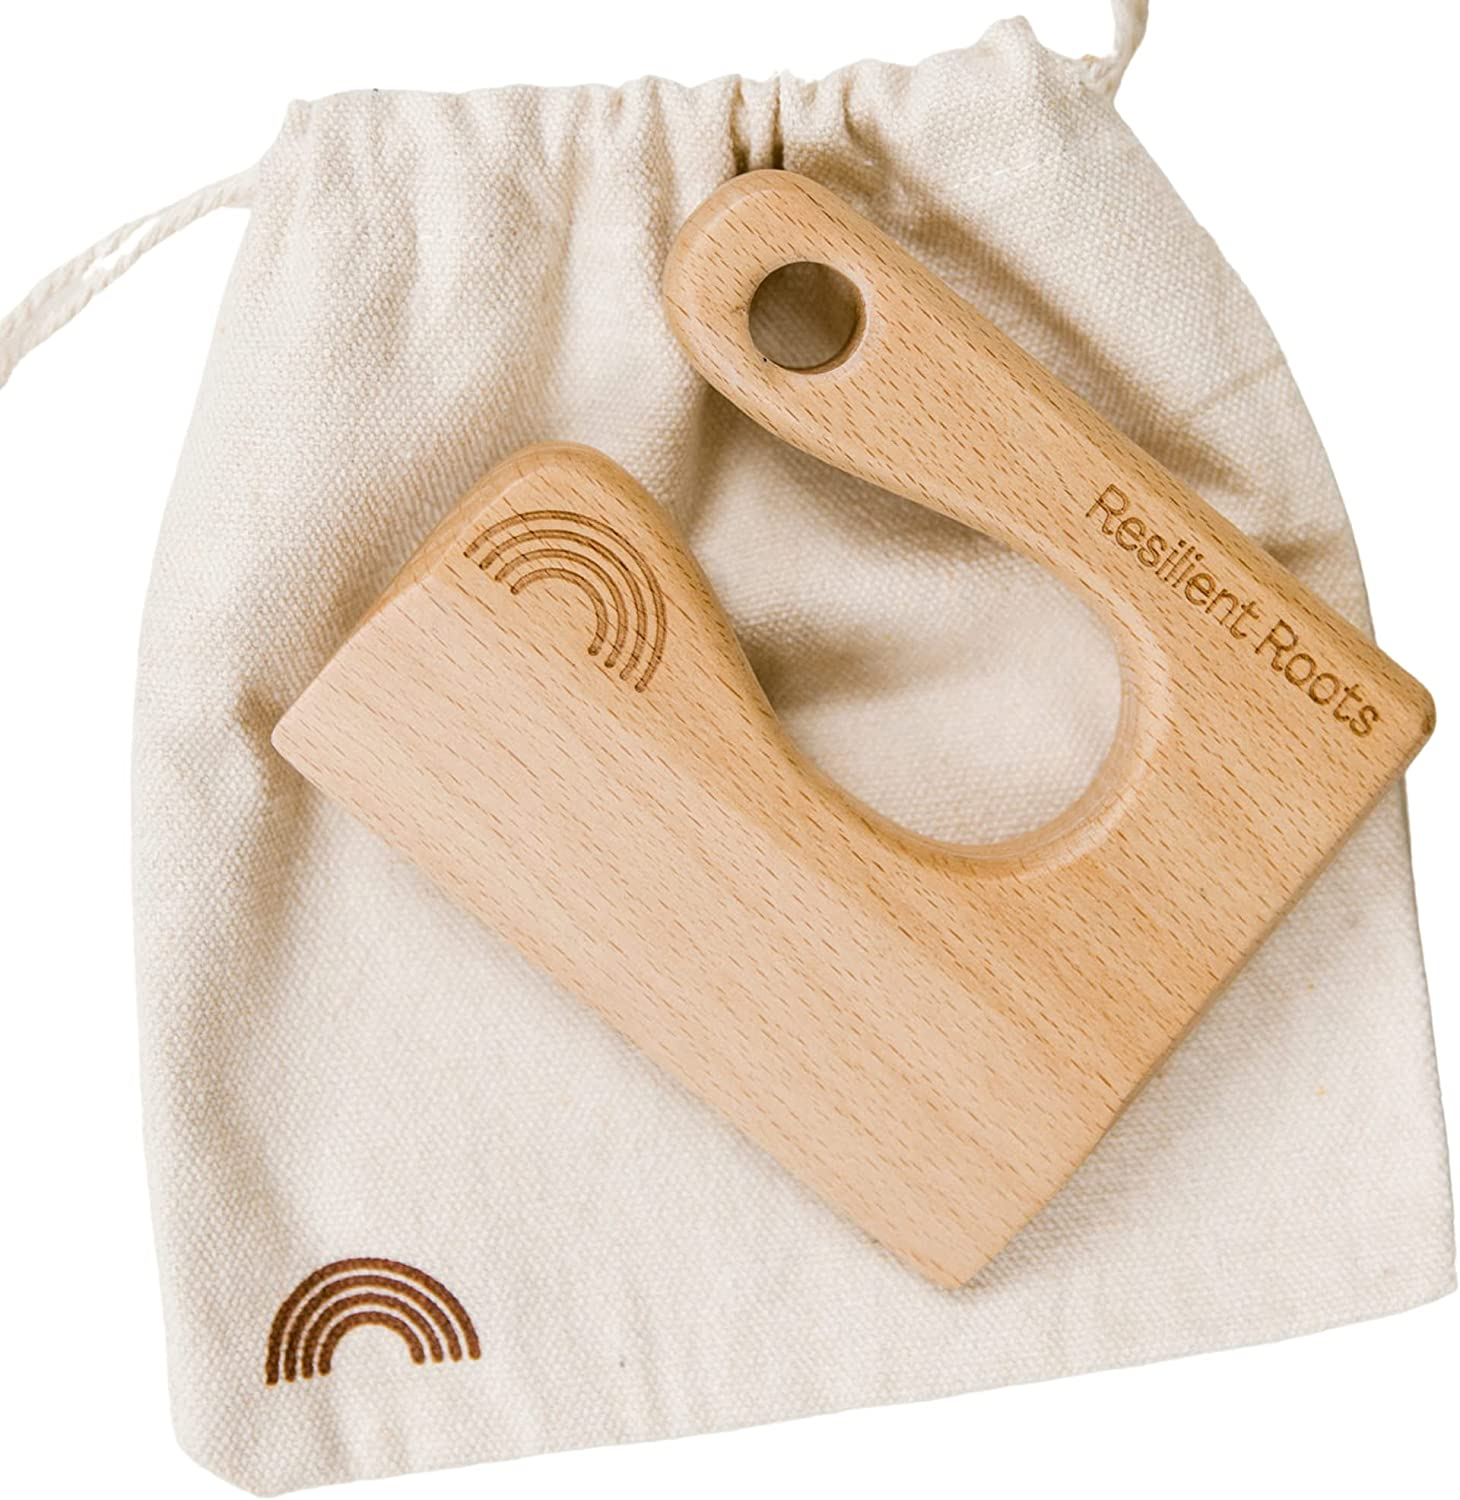 Resilient Roots Wooden 2021 model Kids Knife for I Chopping Miami Mall Toddler